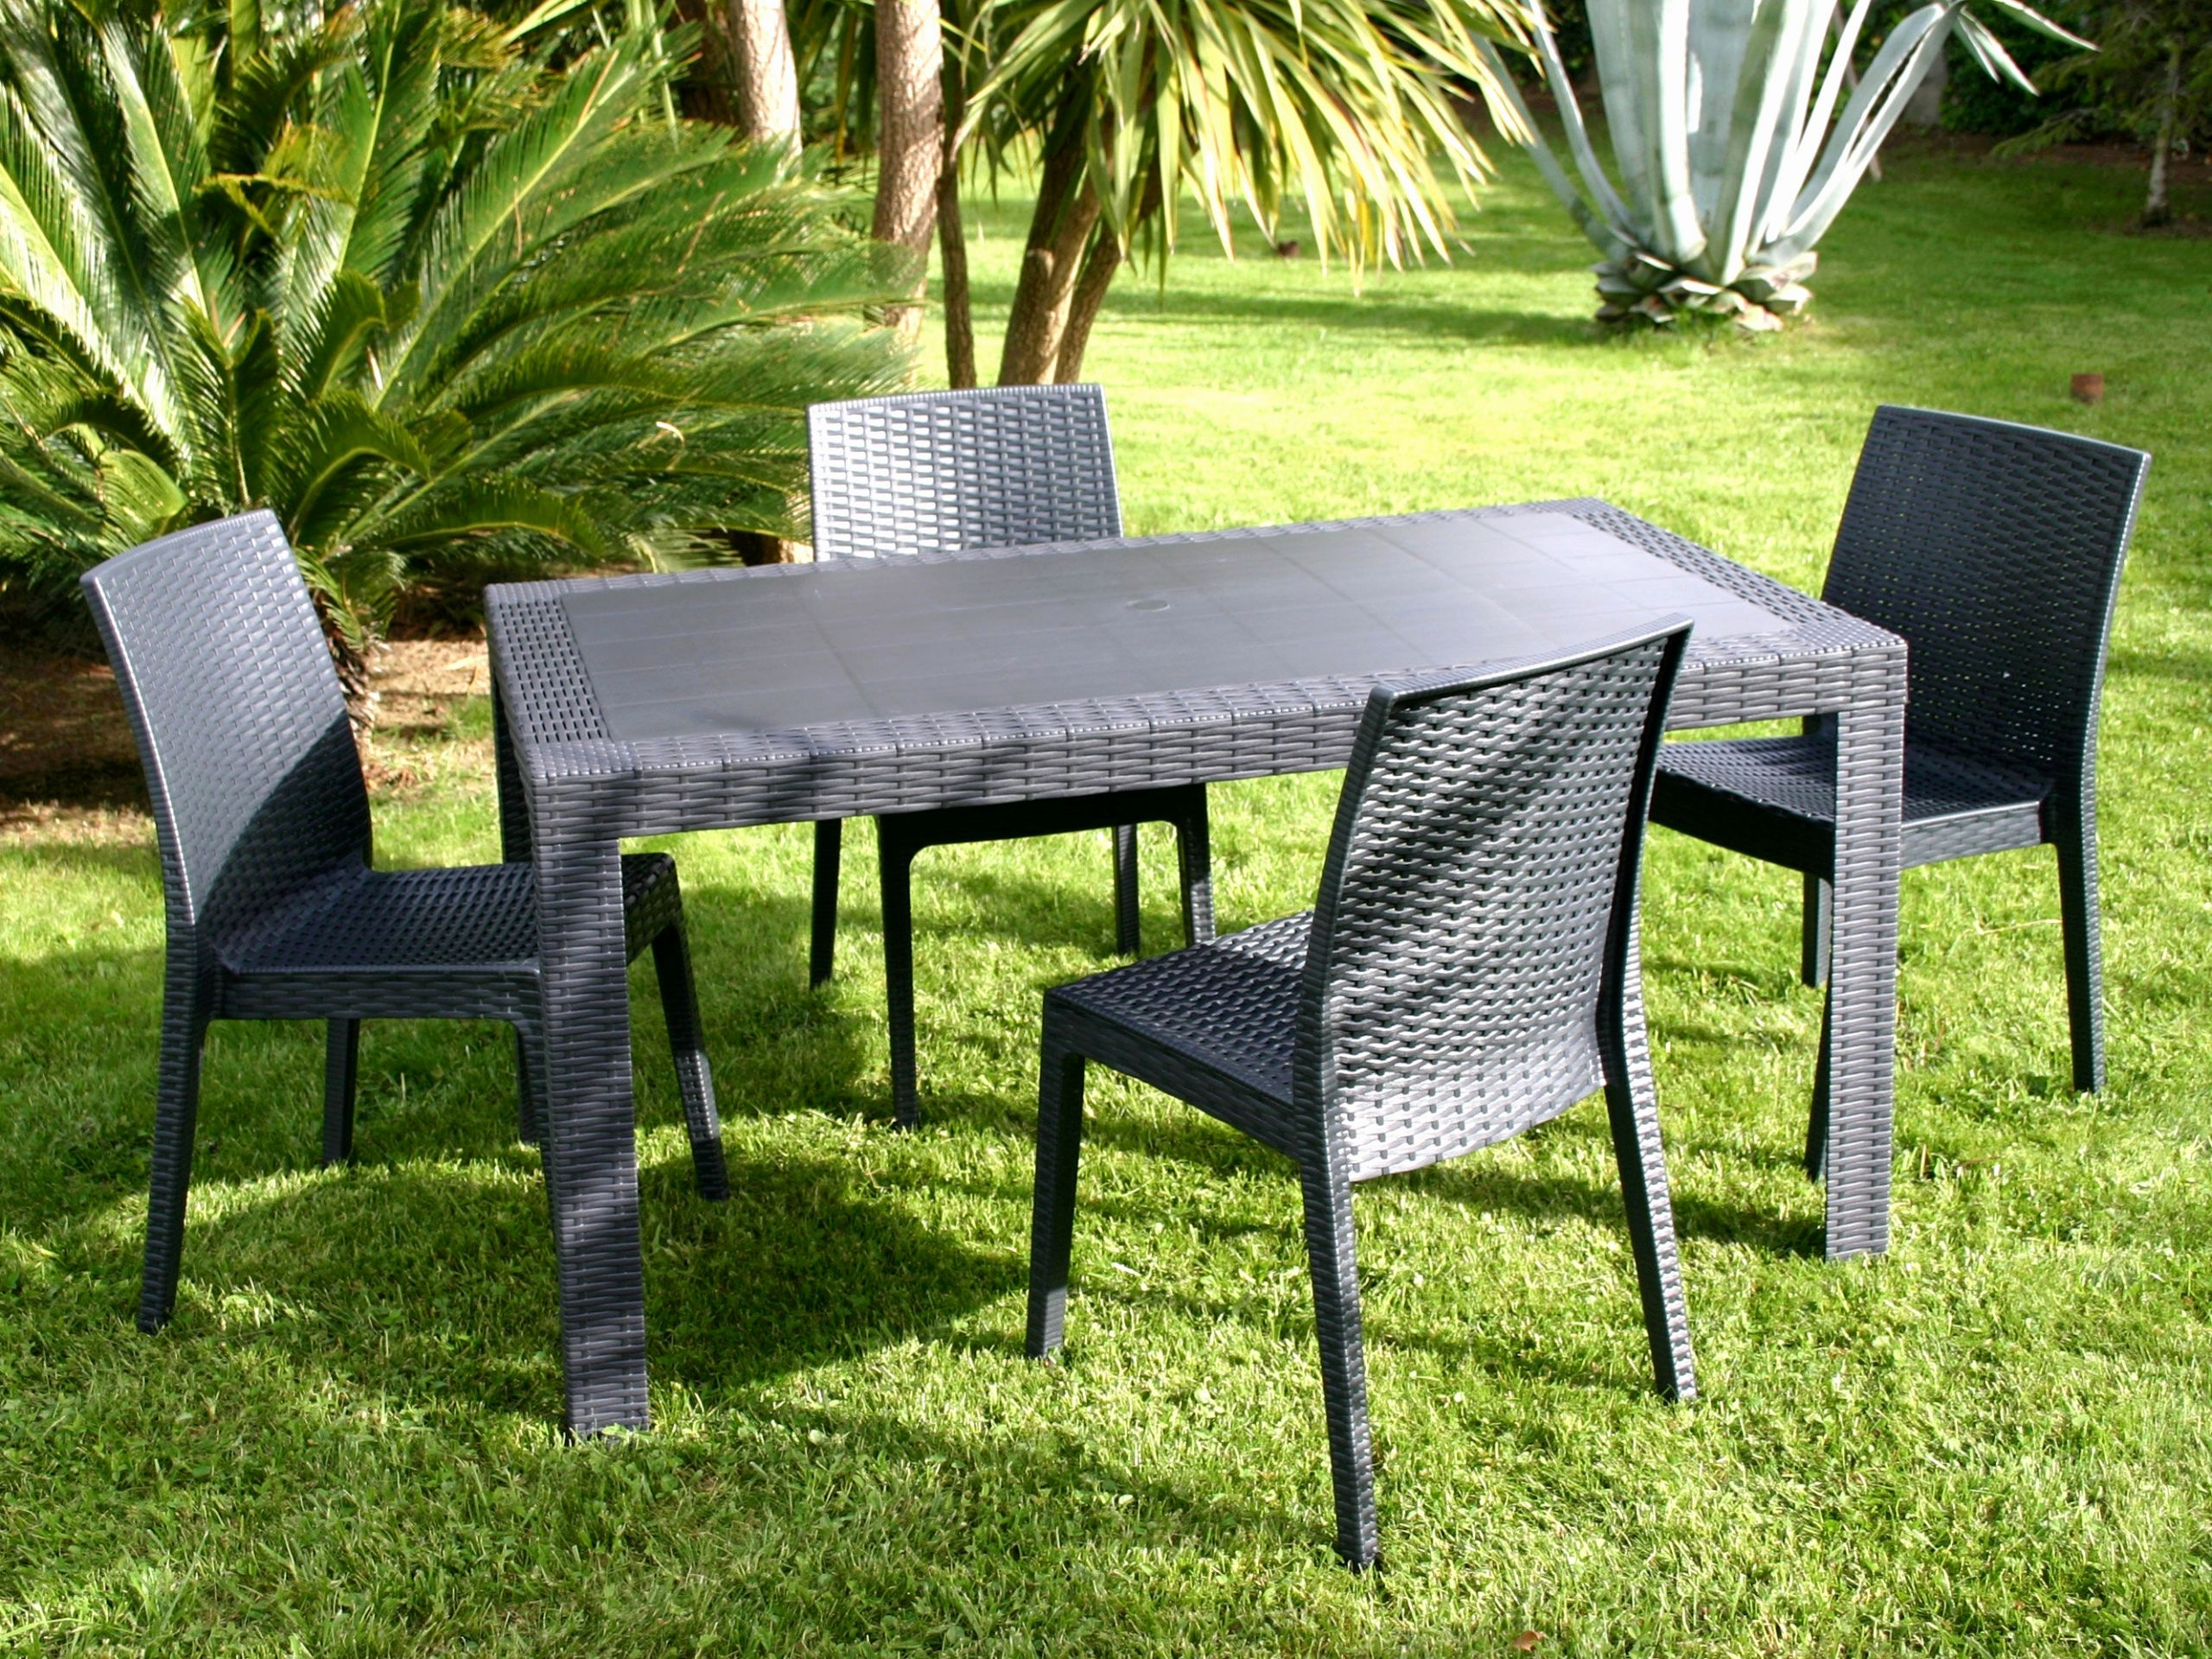 Table Exterieur Carrefour Best Of Catalogue Carrefour Abris ... avec Abri De Jardin Carrefour